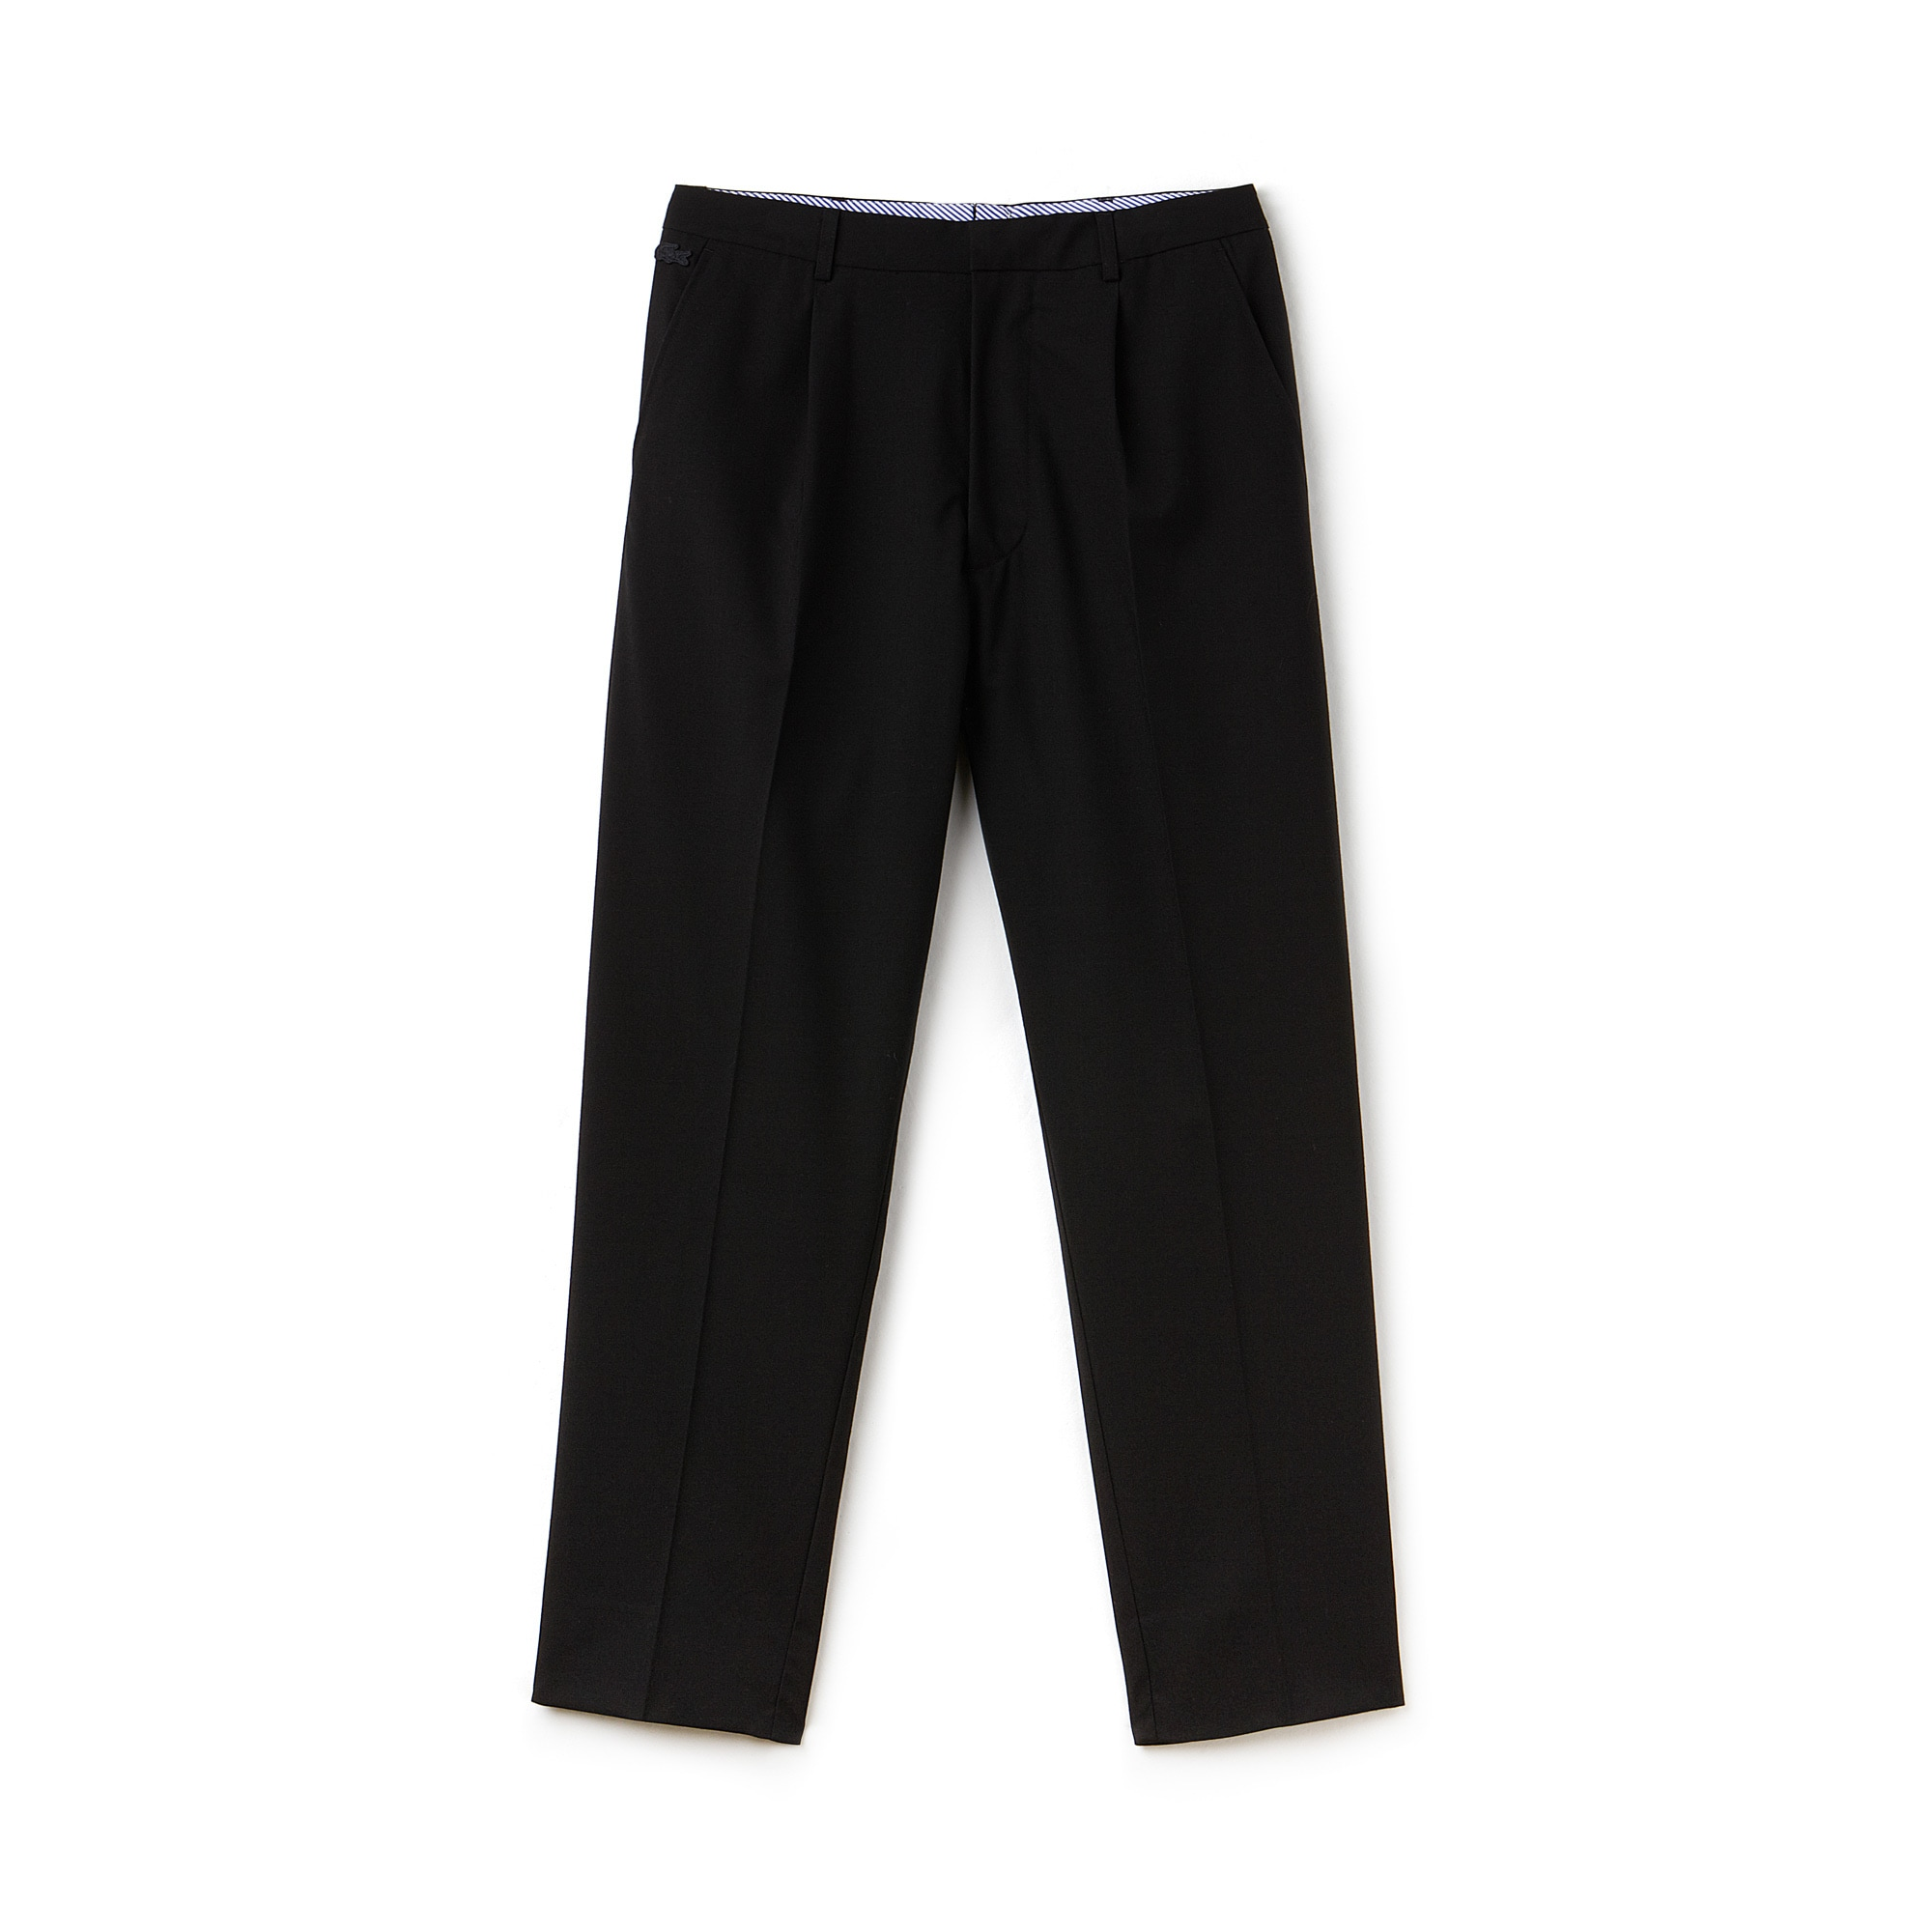 Men's Lacoste LIVE Pleated Stretch Crepe Chino Pants